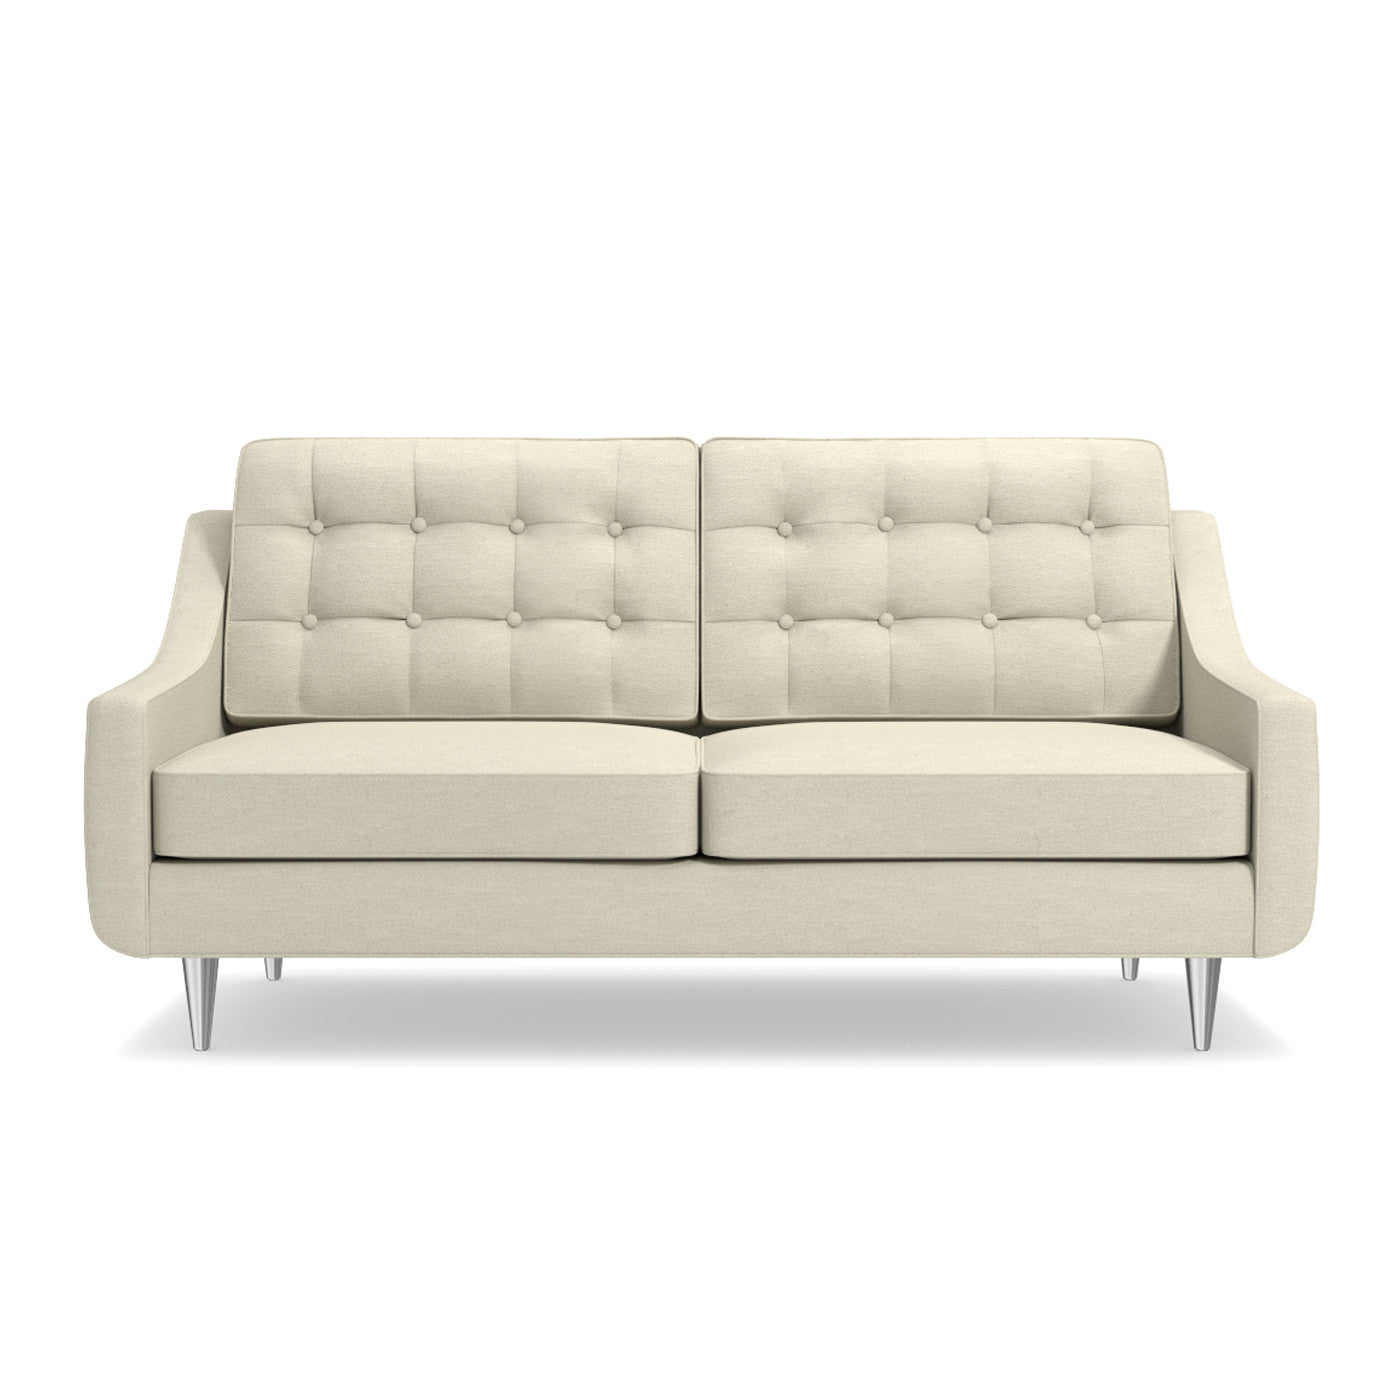 cloverdale drive apartment size sofa choice of fabrics